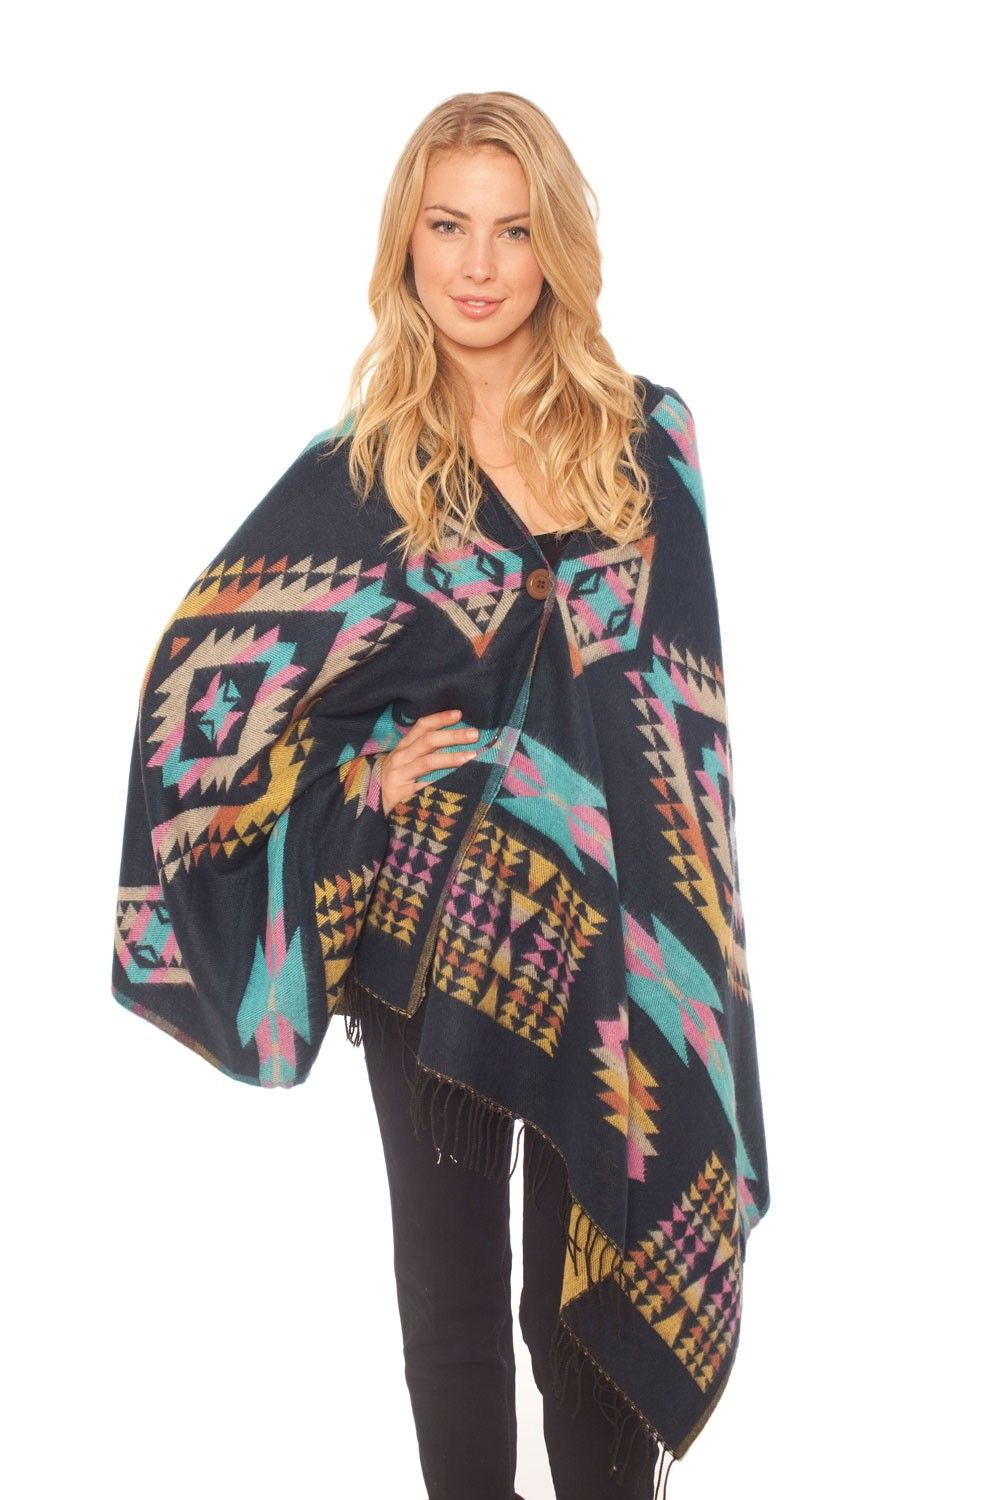 Spun by Subtle Luxury Navajo Poncho